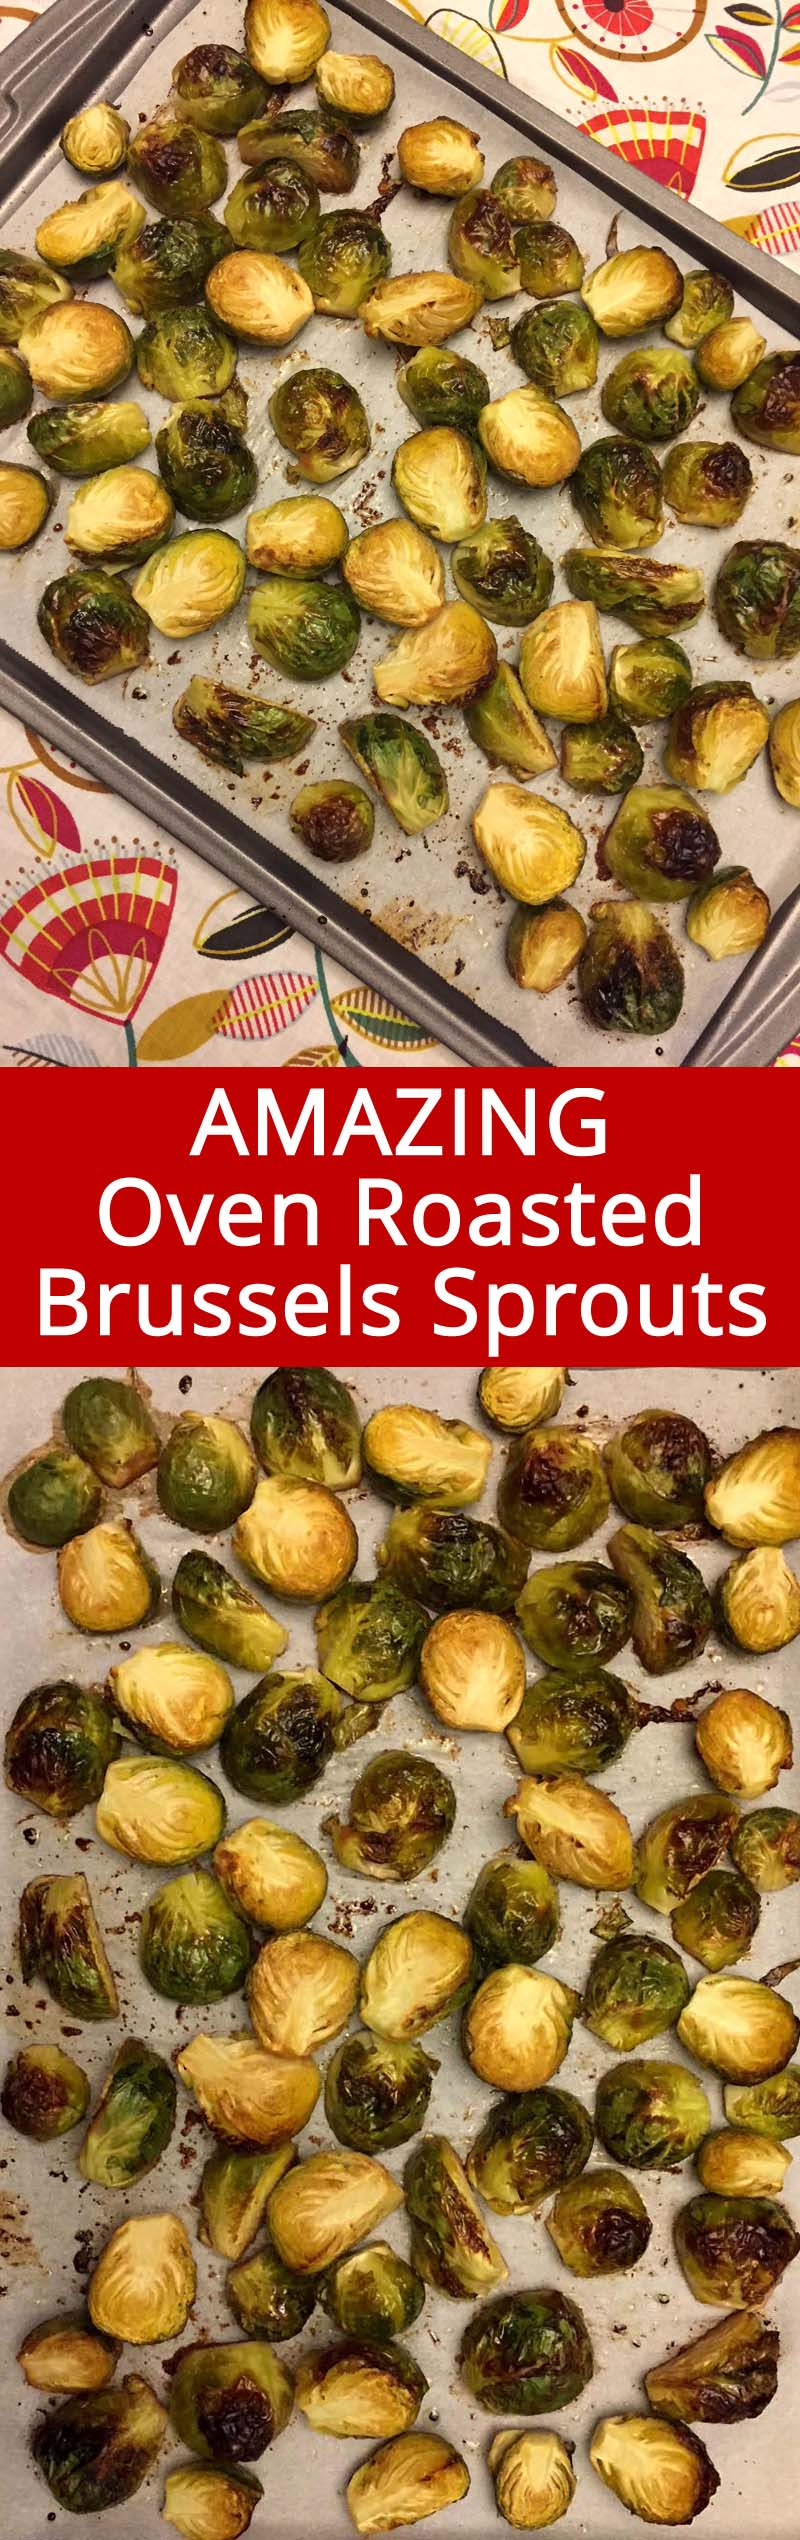 These oven roasted brussels sprouts are so easy to make and taste amazing! This is my favorite way to eat brussels sprouts!  Healthy and yummy!